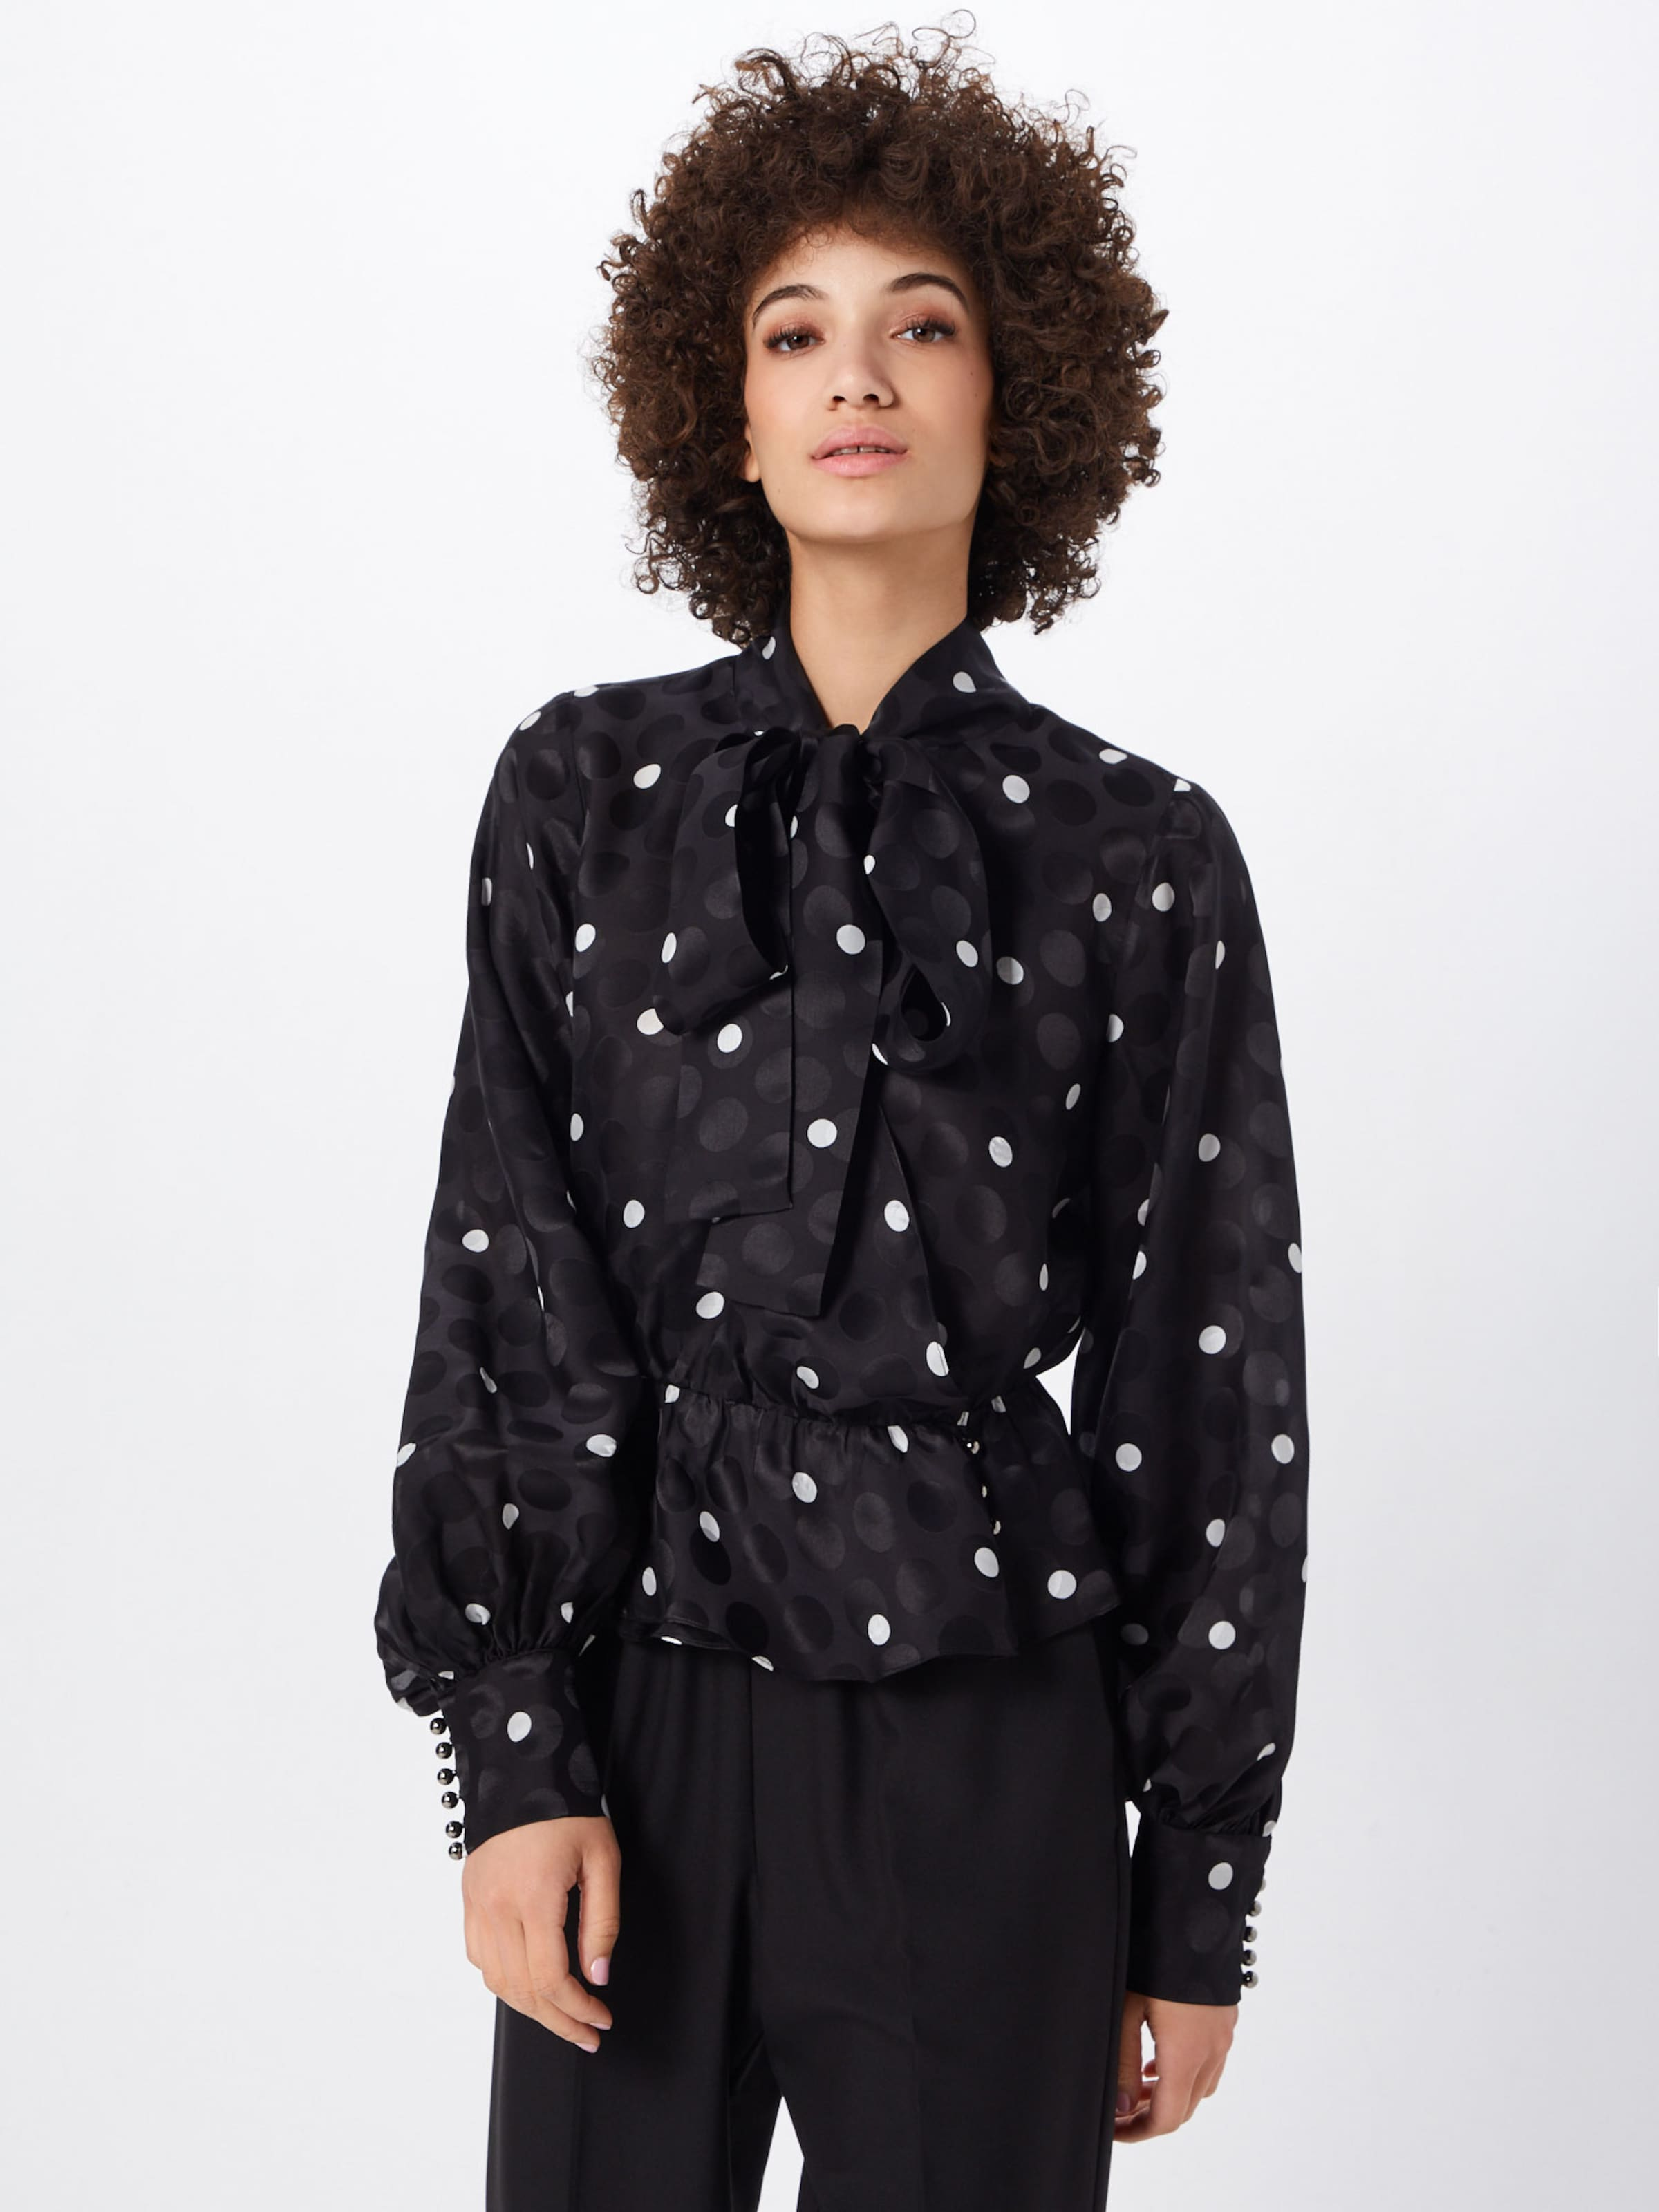 The SchwarzNaturweiß In Bluse The In Kooples Bluse SchwarzNaturweiß The Kooples J3FcT1lK